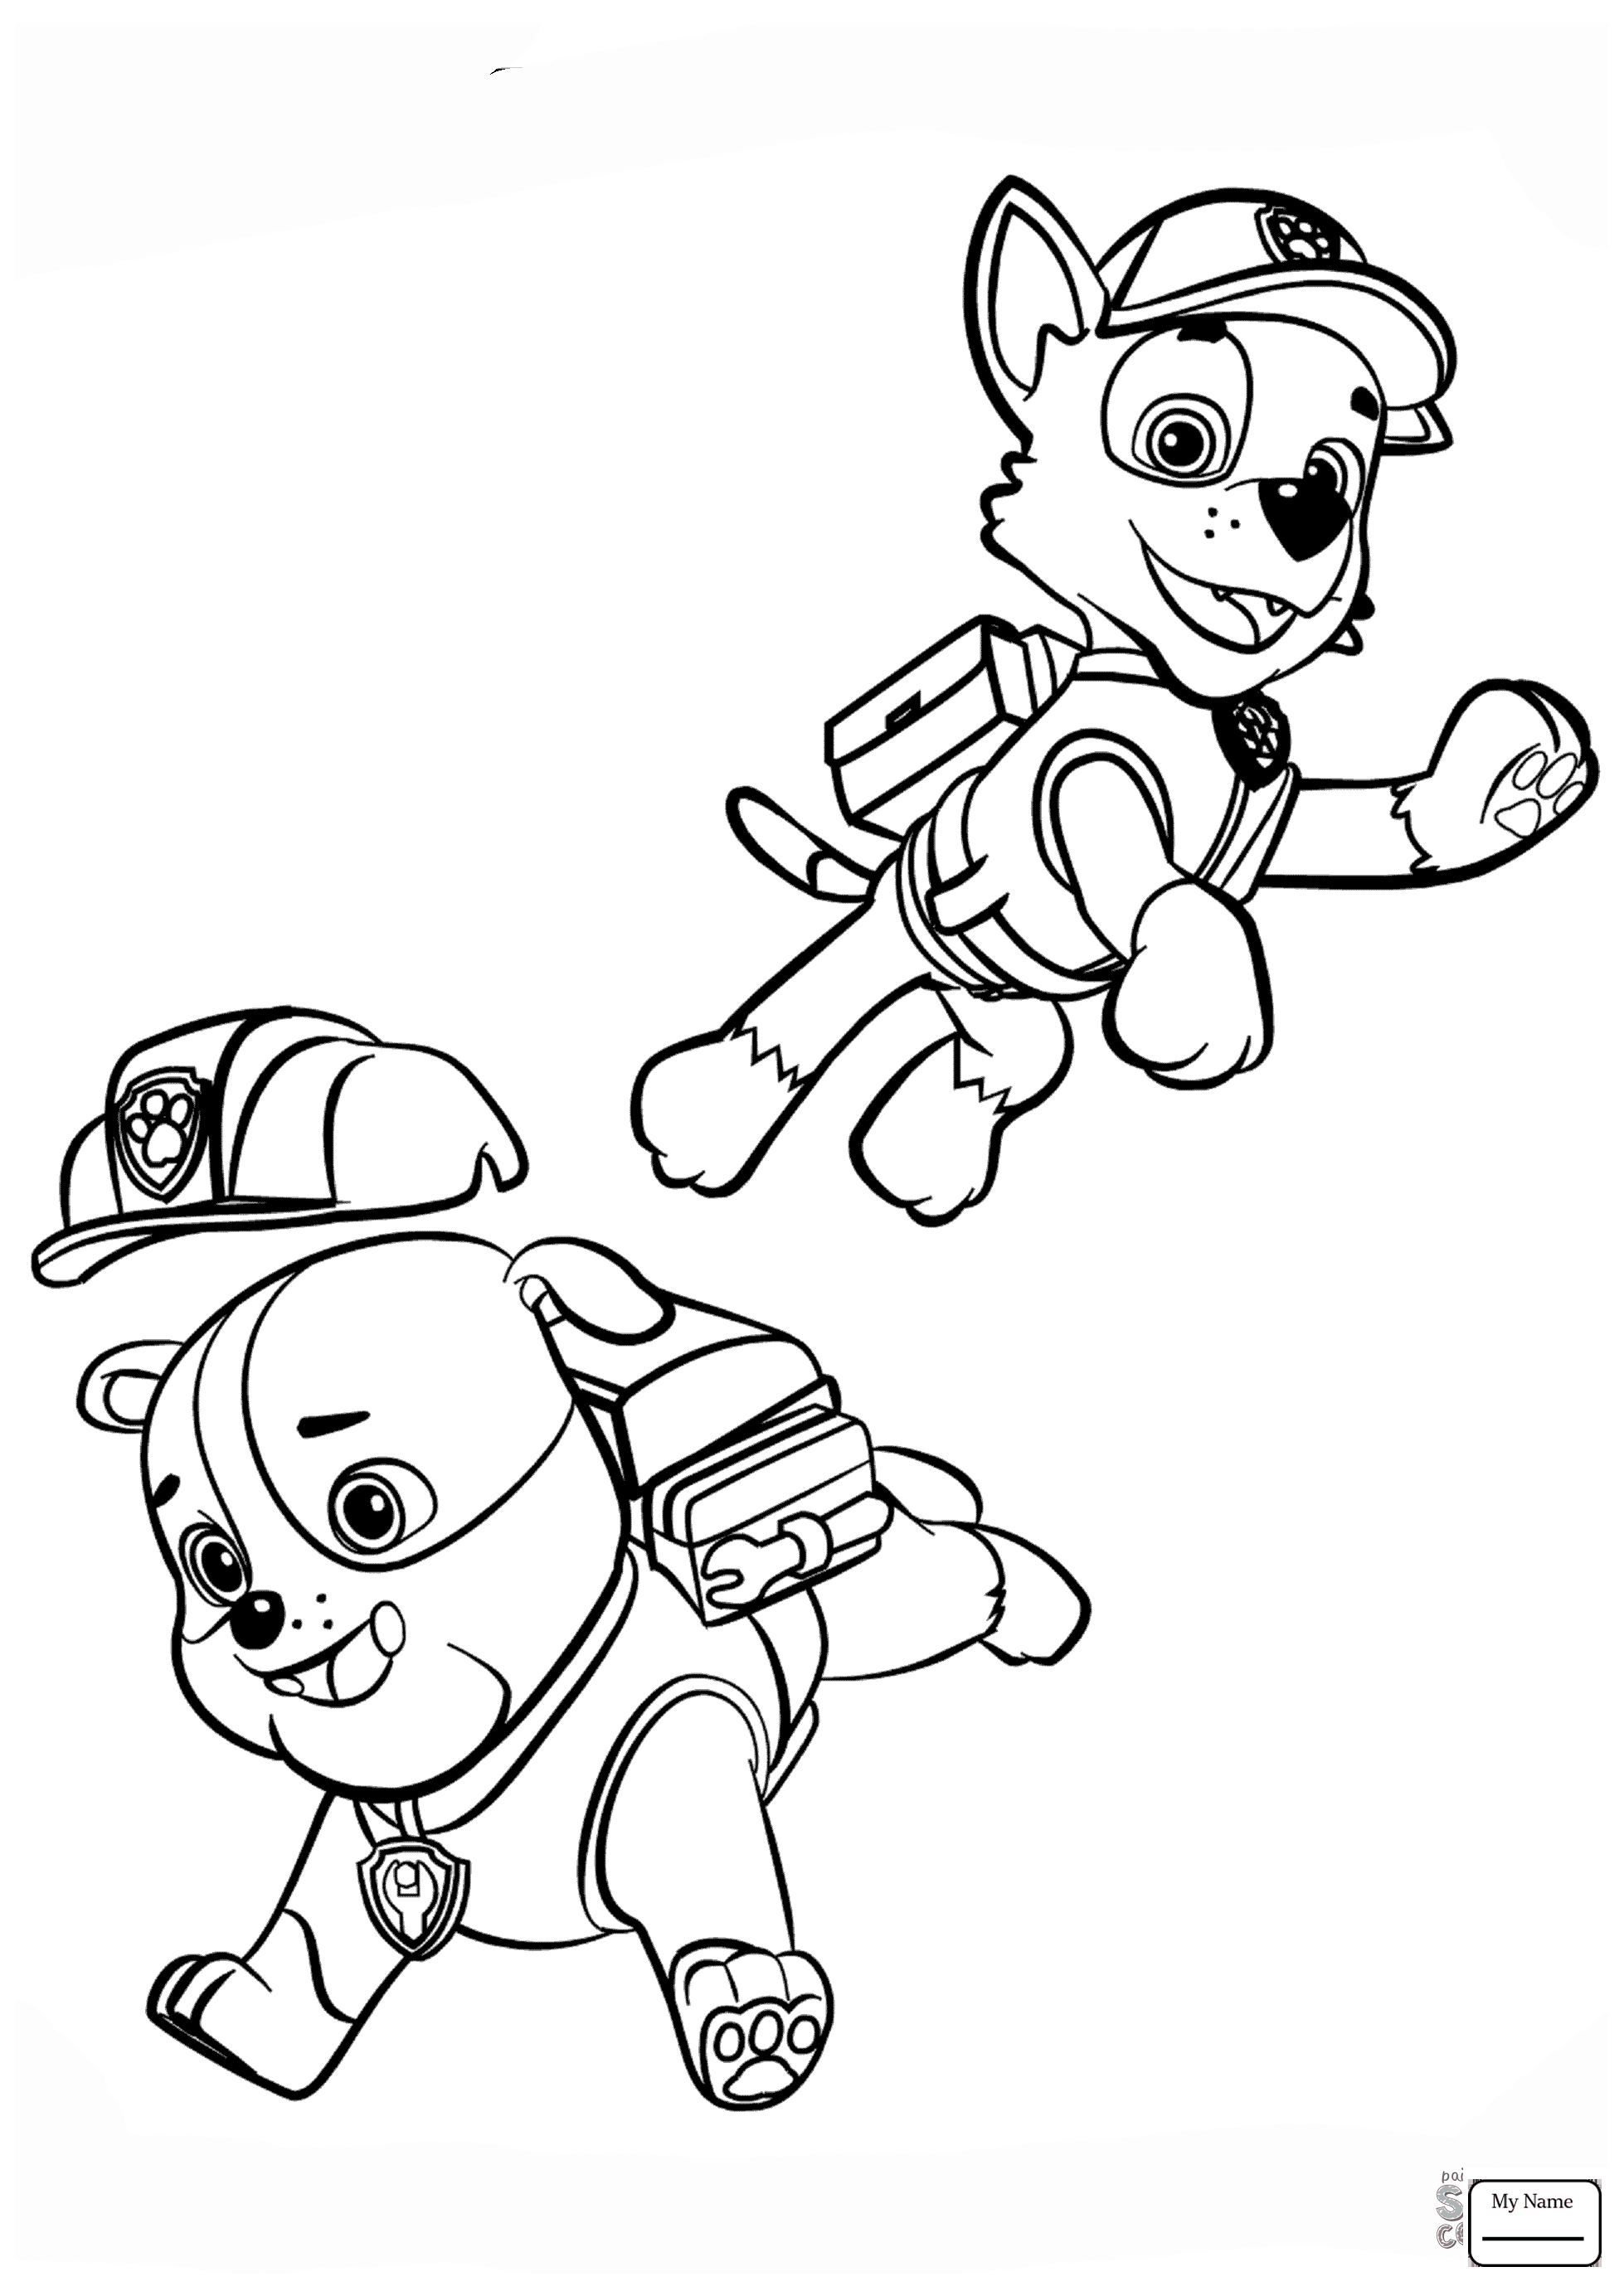 Paw Patrol Chase Drawing at GetDrawings.com | Free for ...